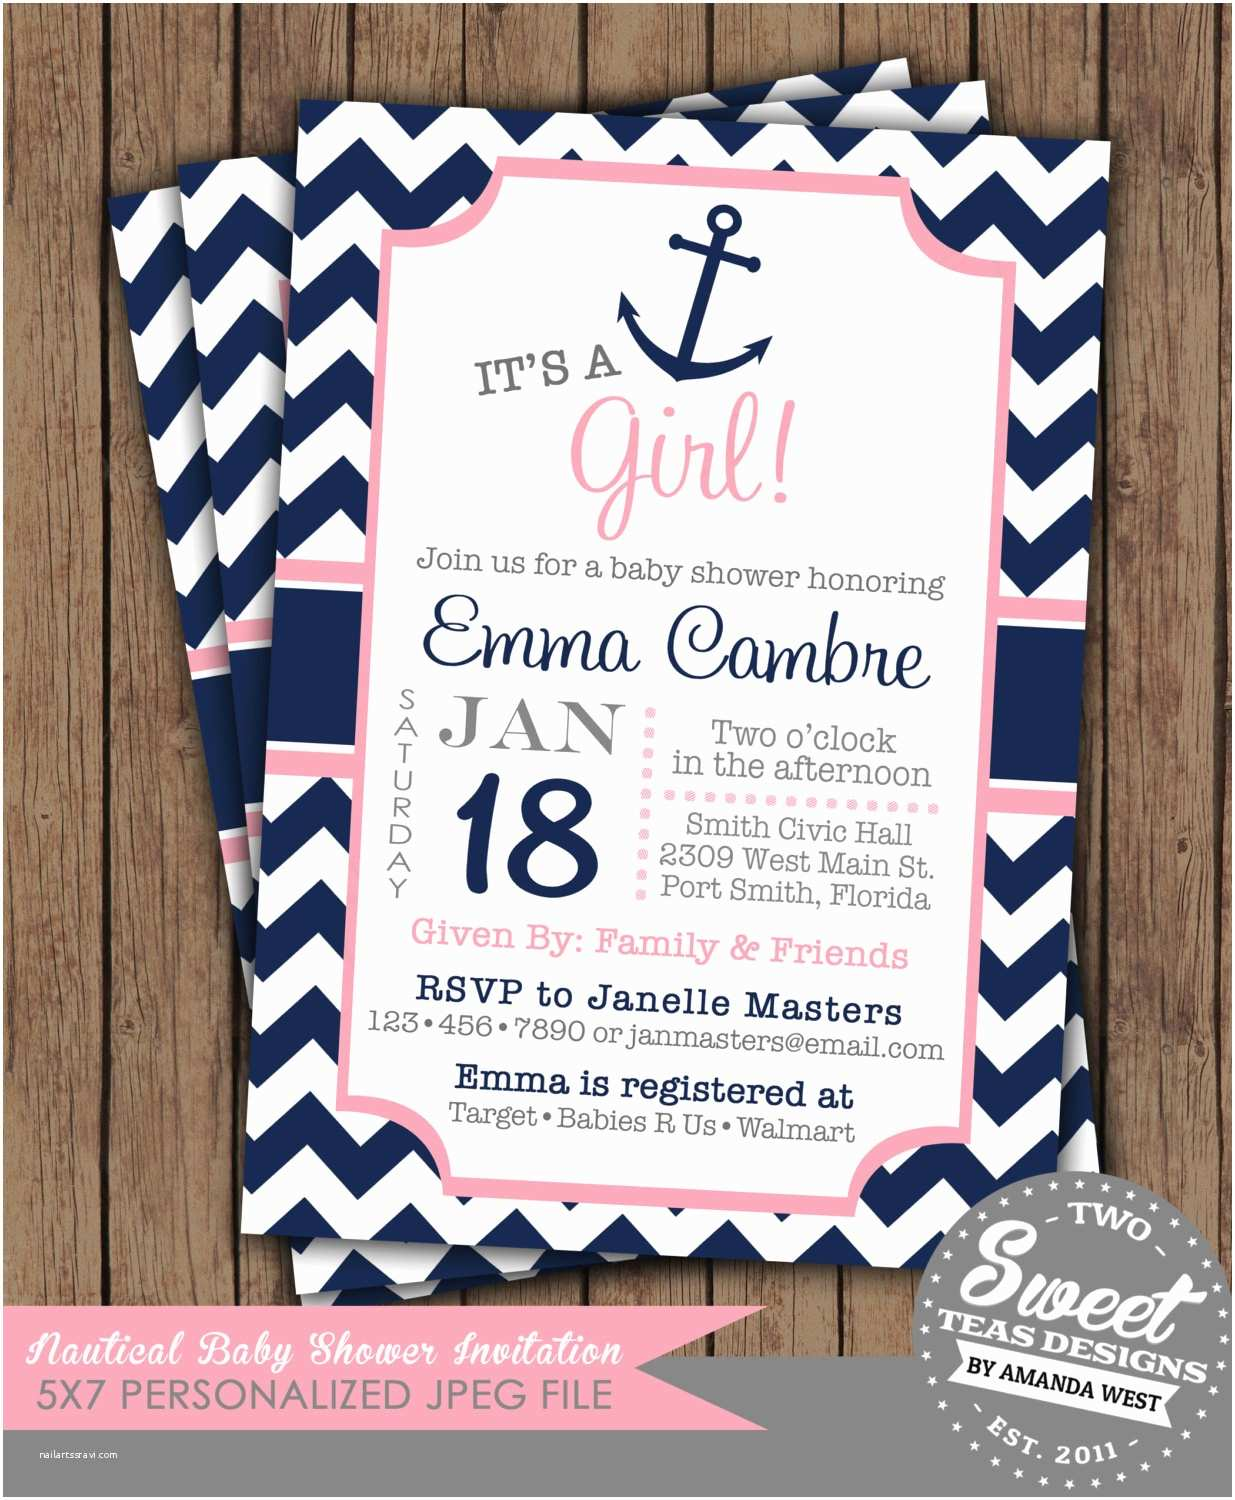 Nautical themed Baby Shower Invitations Nautical Girl Baby Shower Invitation Chevron by 2sweetteas